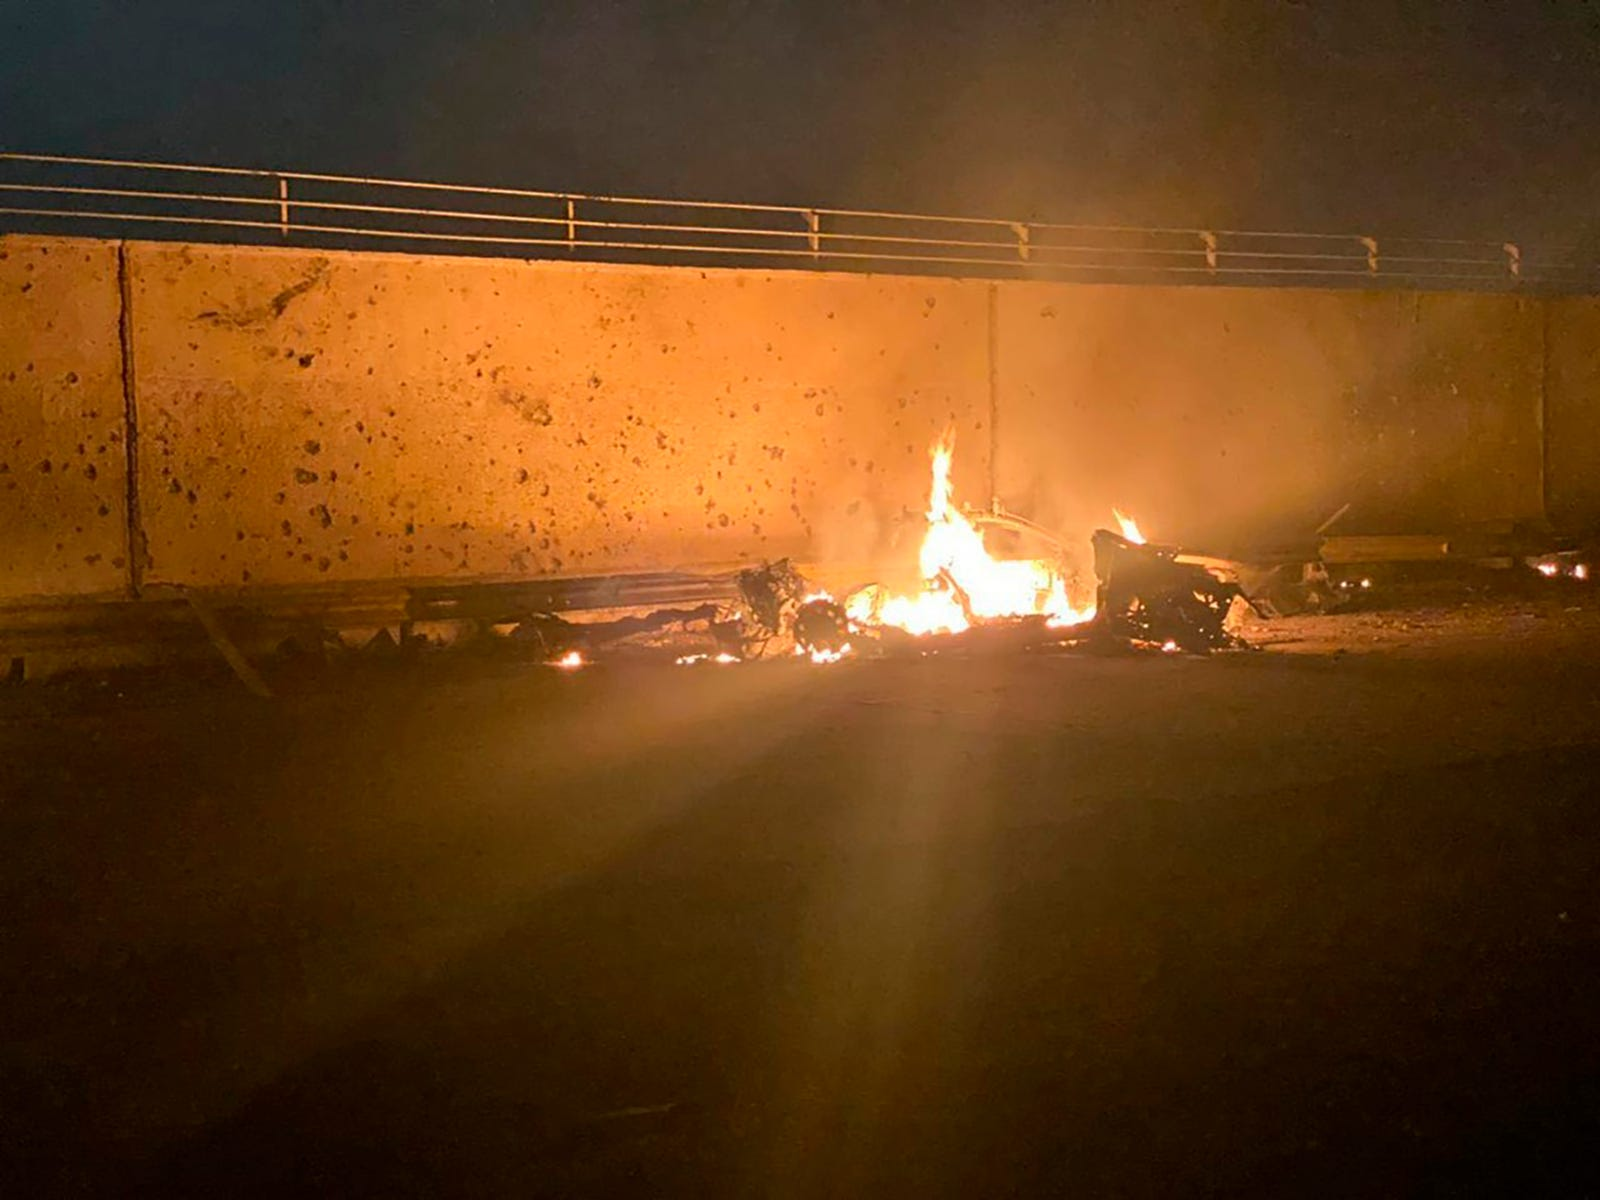 This photo released by the Iraqi Prime Minister Press Office shows a burning vehicle at the Baghdad International Airport following an airstrike, in Baghdad, Iraq, early Friday, Jan. 3, 2020.